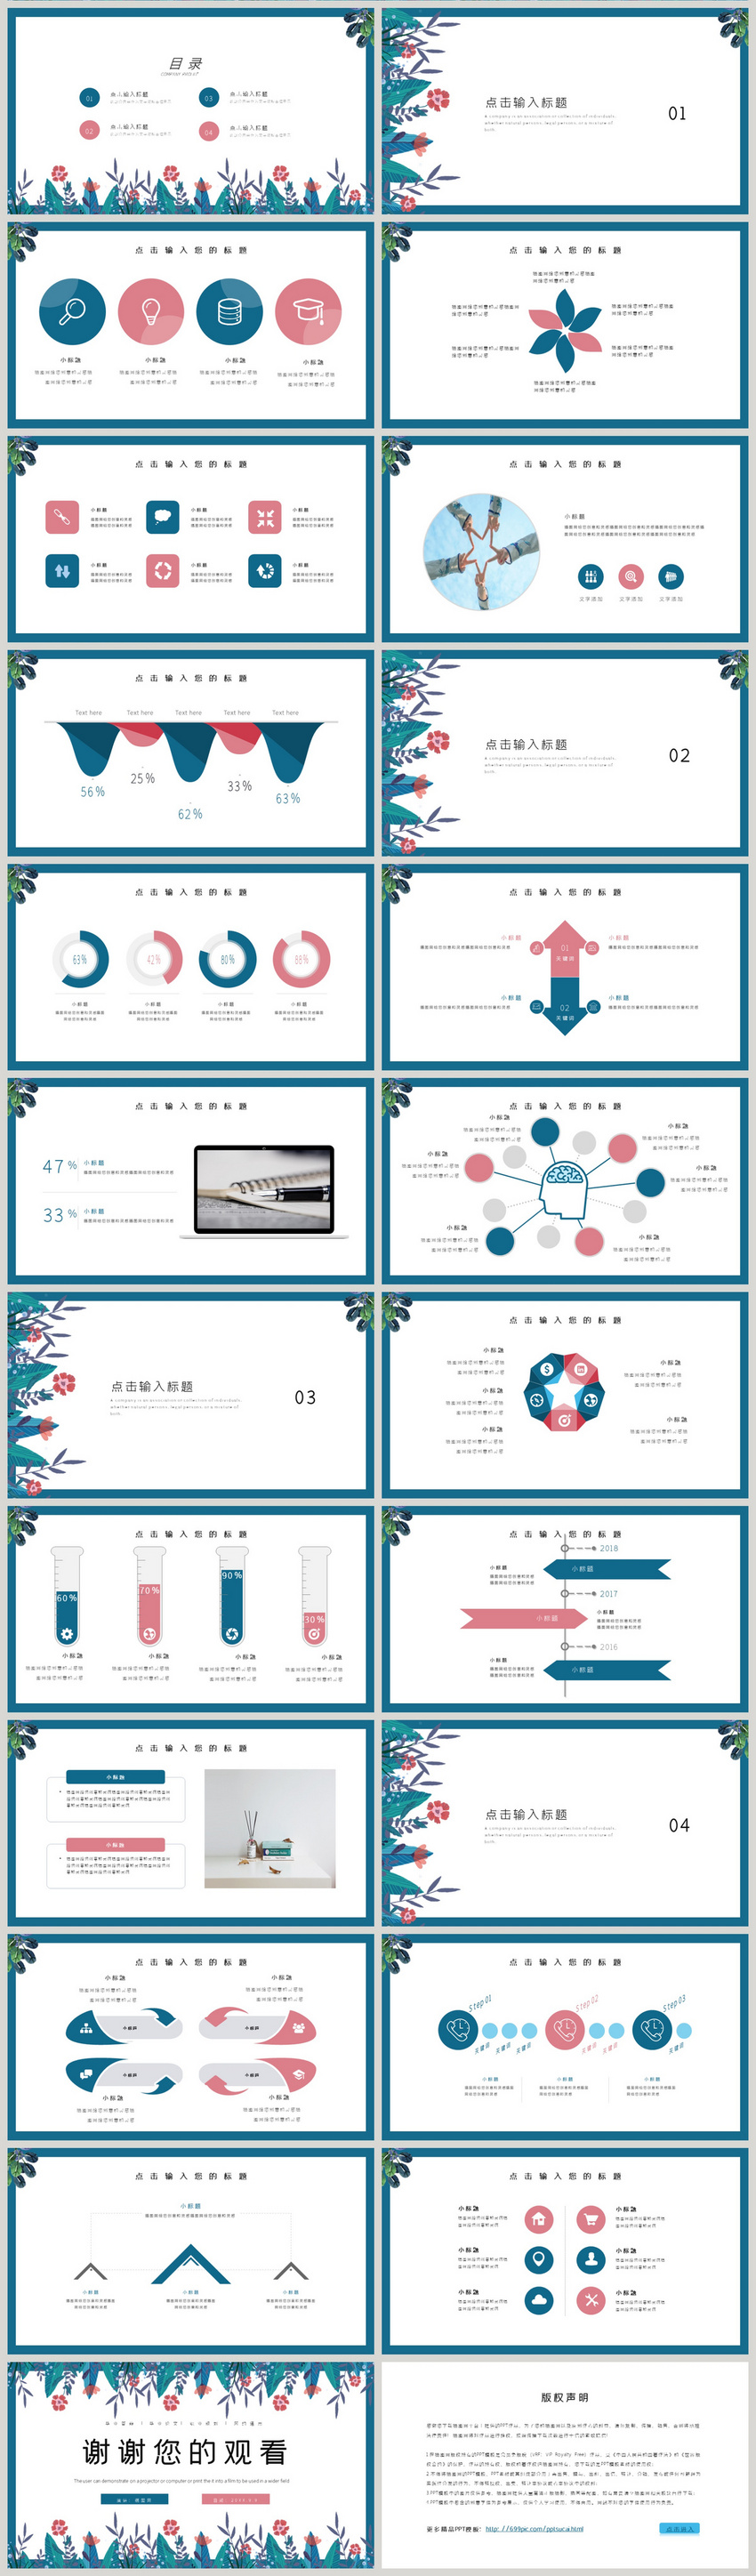 small fresh graduation thesis defense ppt template